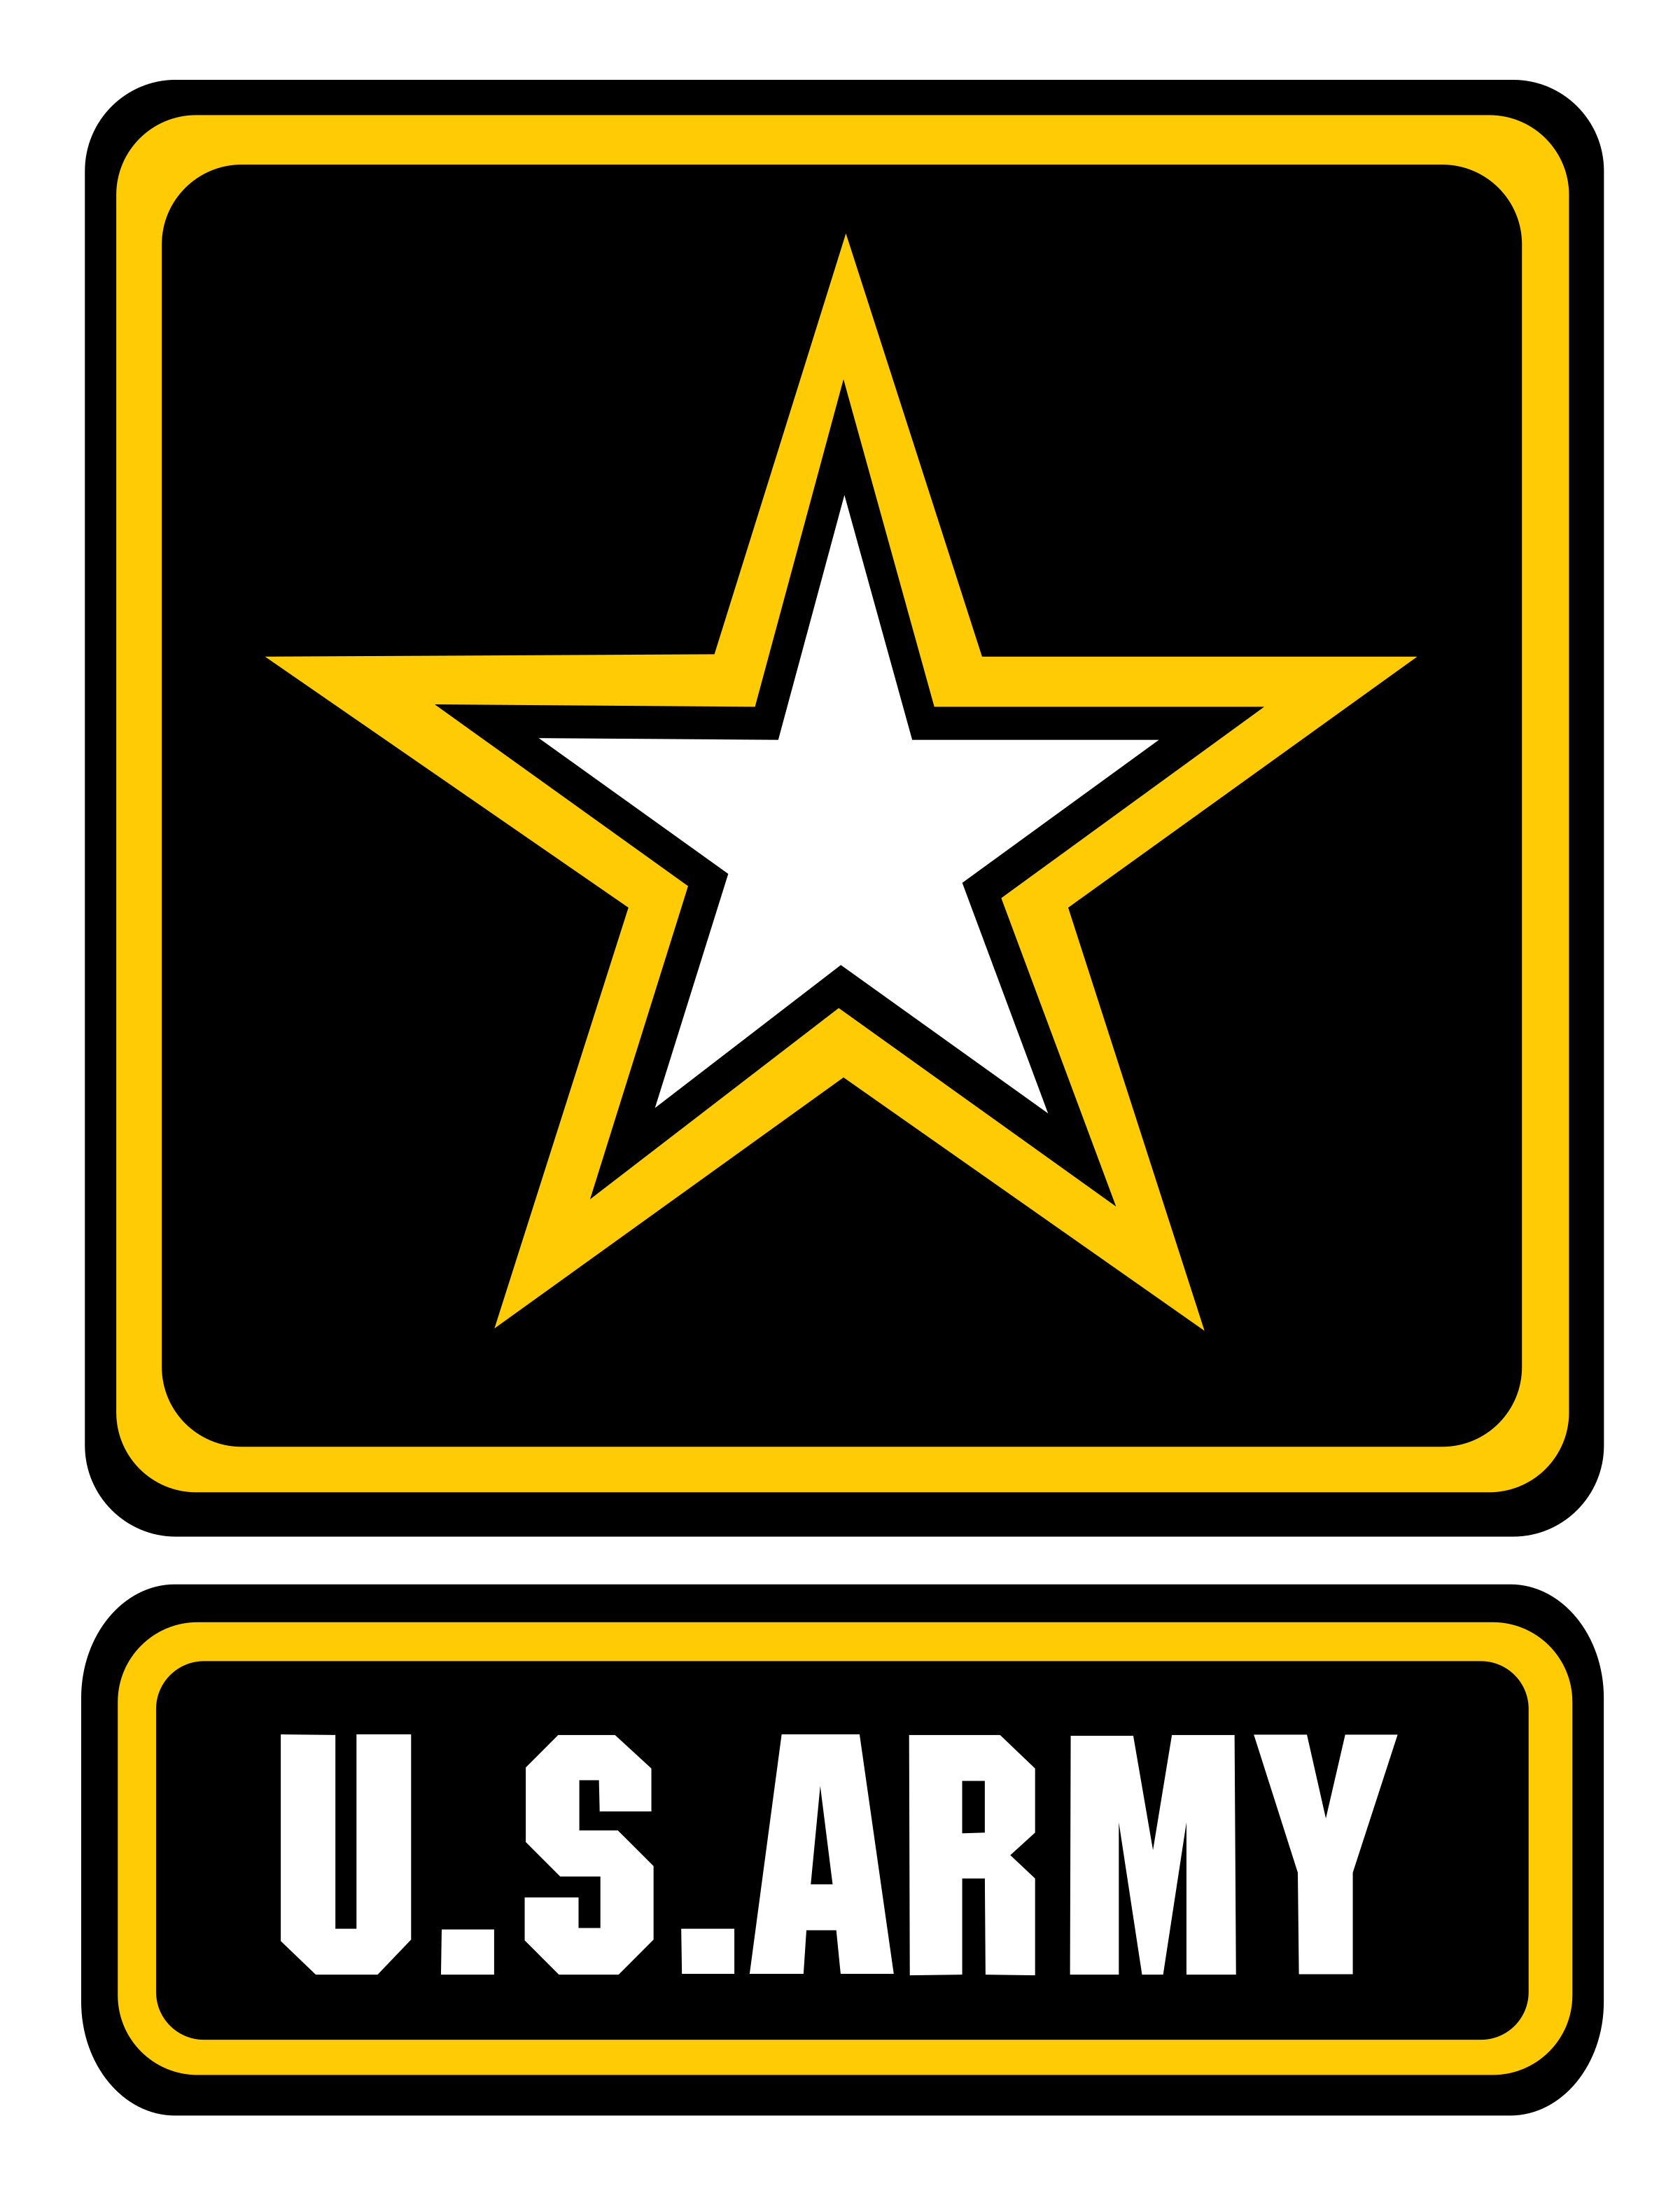 U S Games Systems Inc Tarot Inspiration Universal: U.S. Army Logo PNG Transparent & SVG Vector